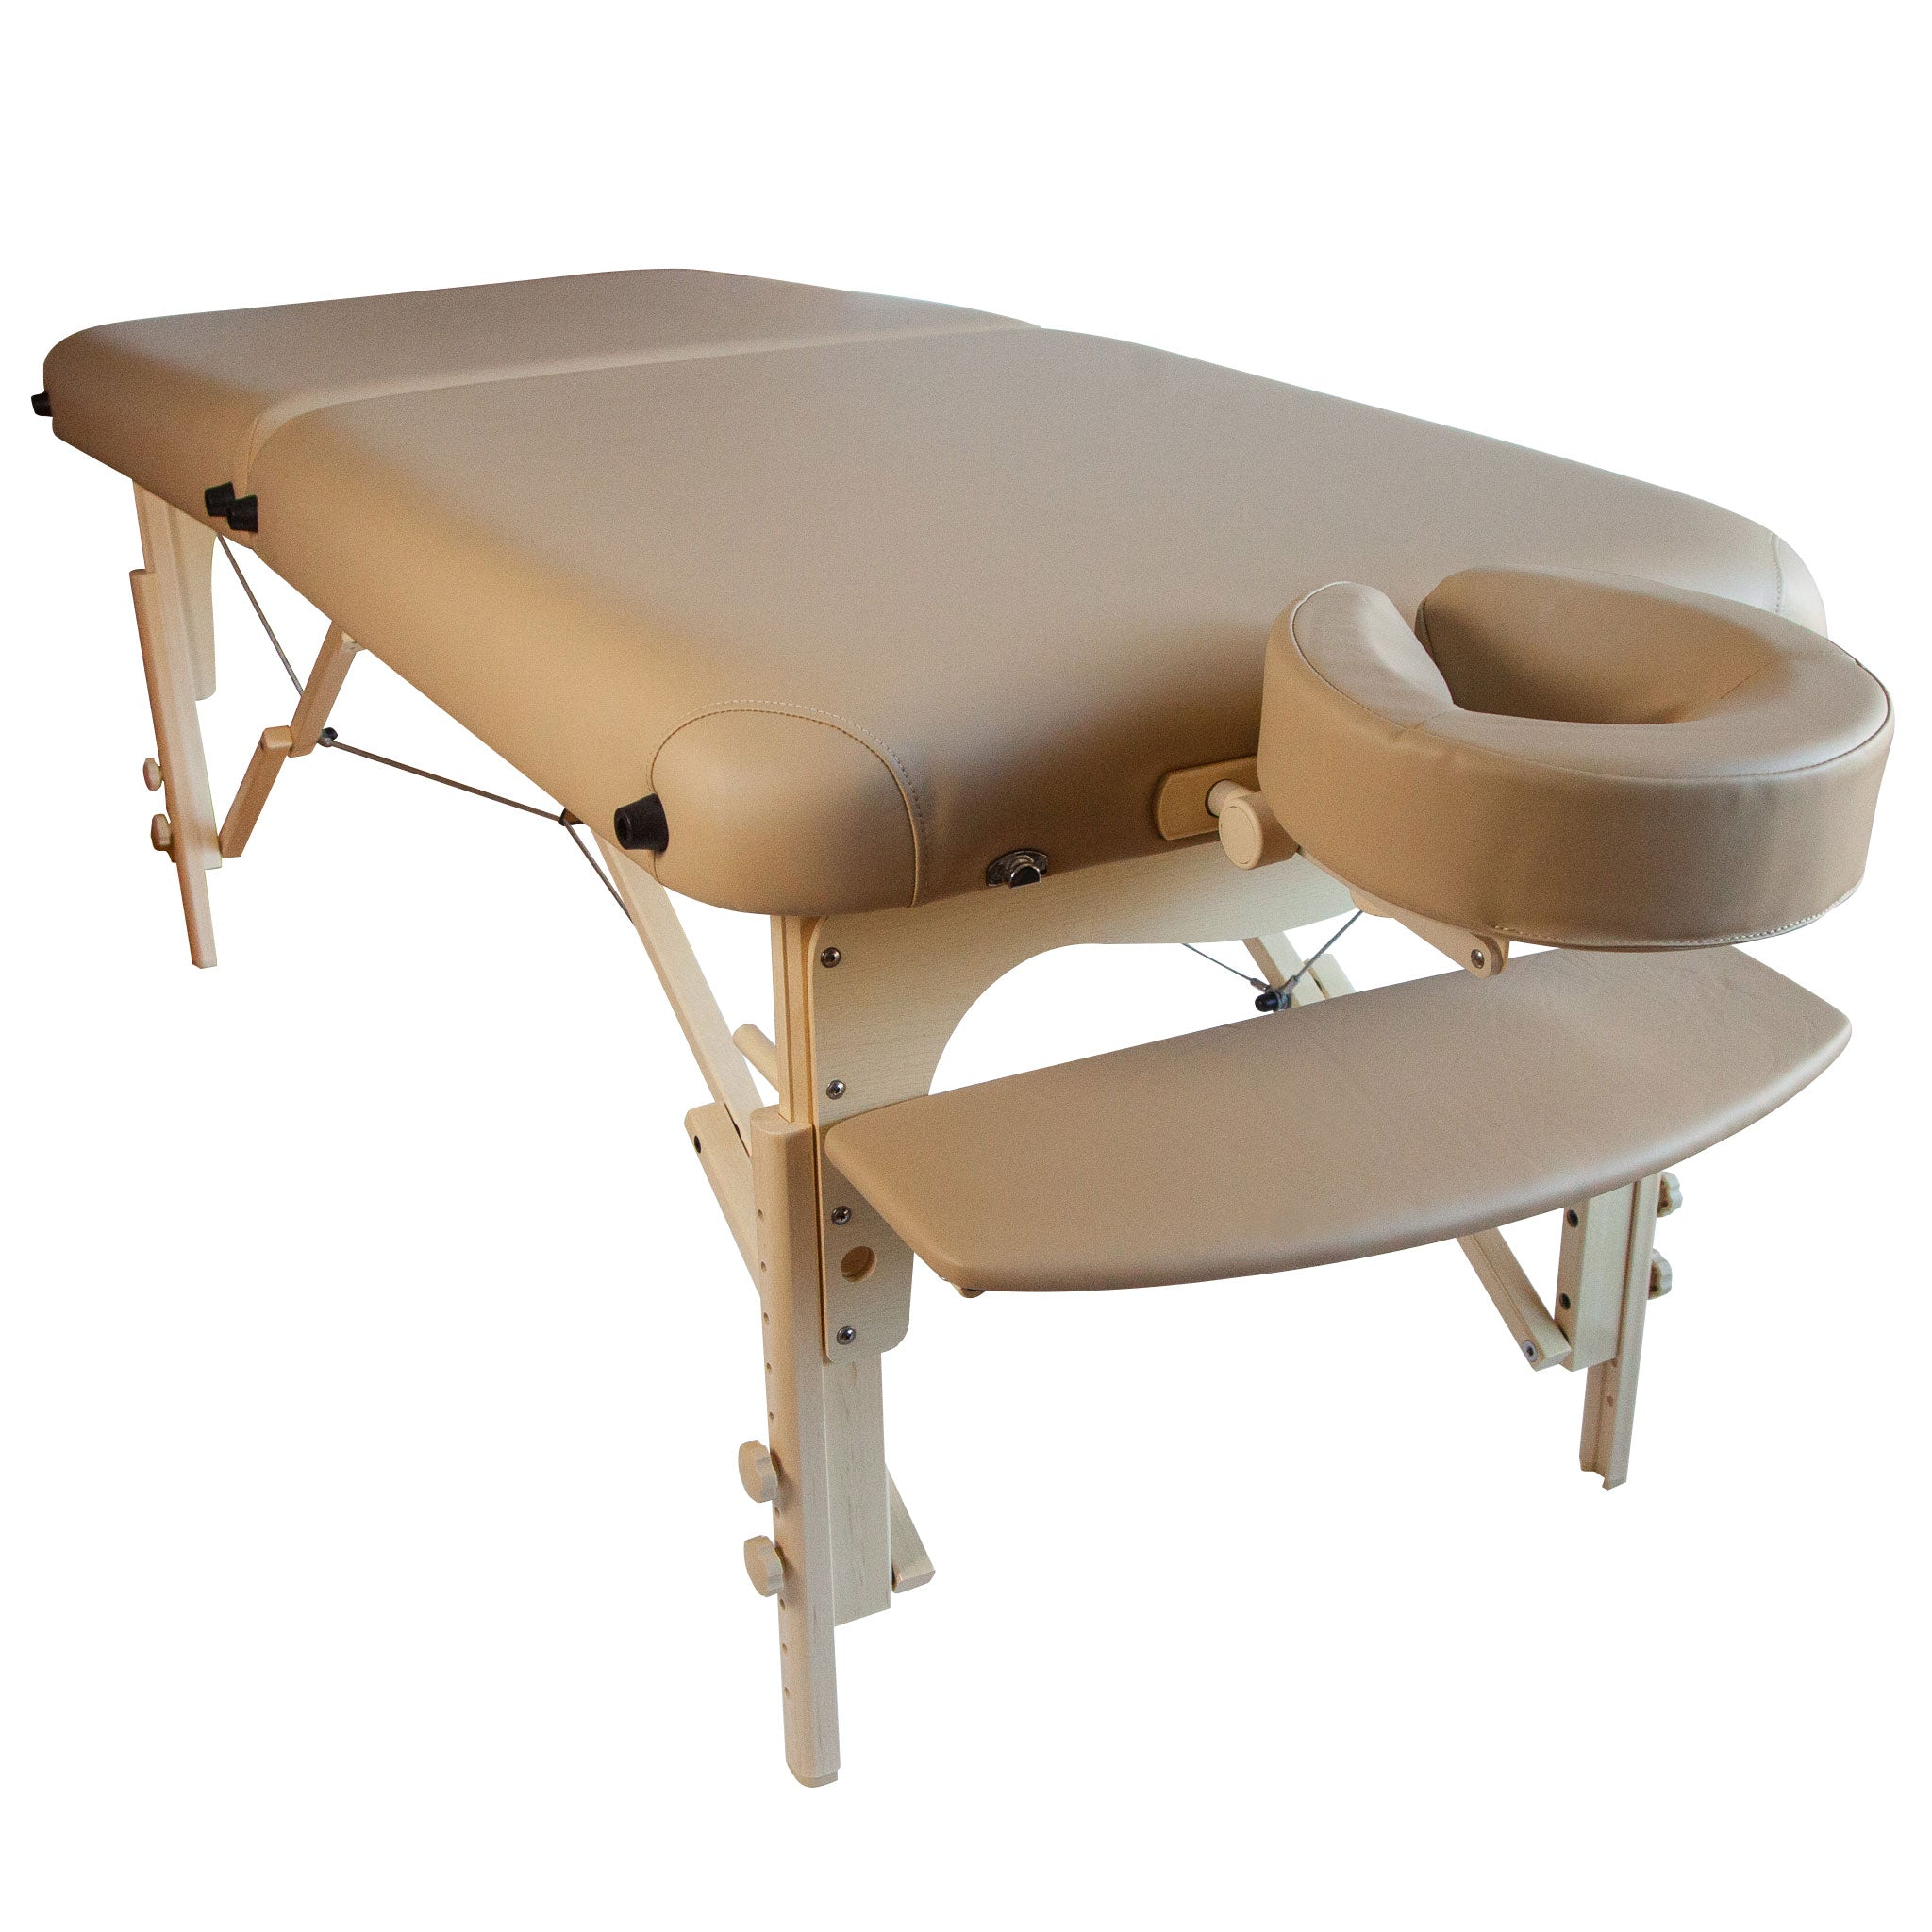 Massage Table Rental - Daily or Weekly